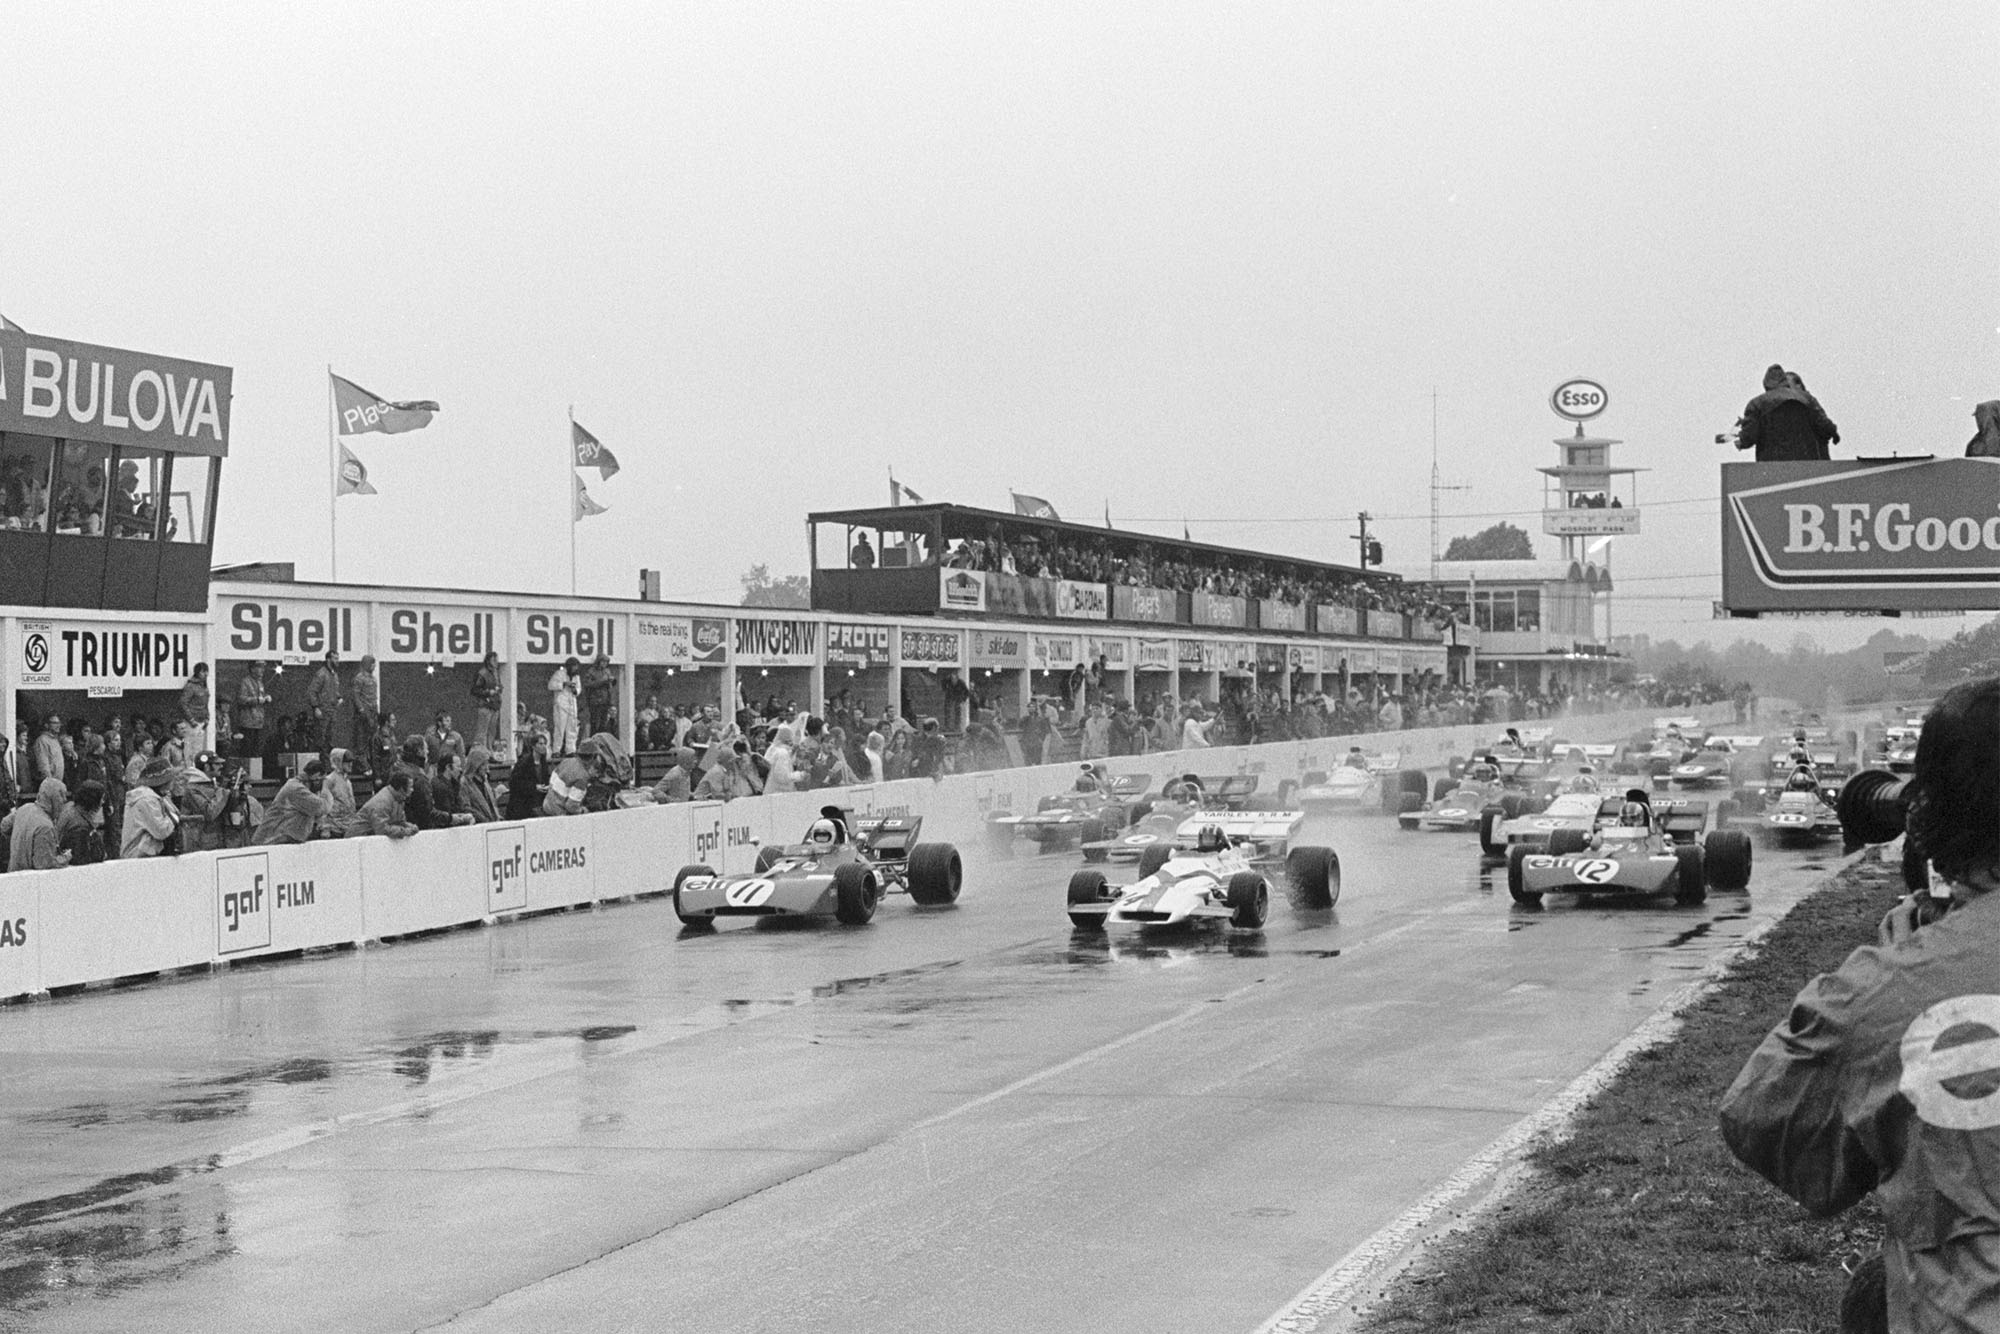 Cars tentatively pull away as the 1971 Canadian Grand Prix starts in treacherous conditions